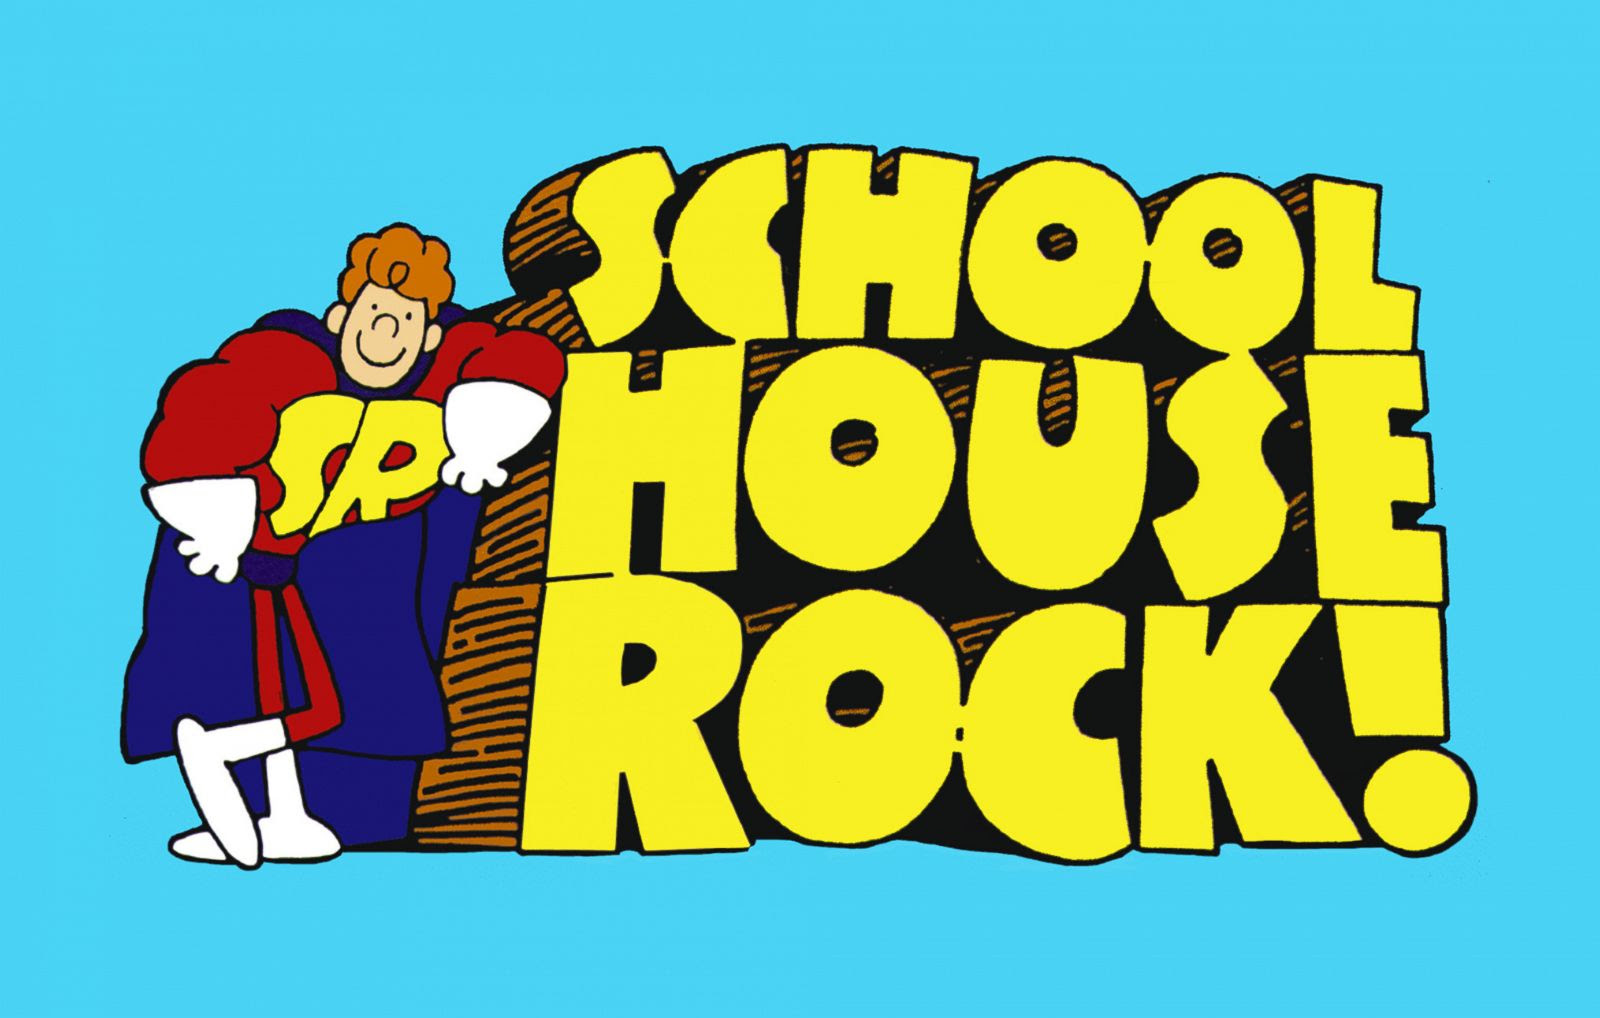 http://a.abcnews.com/images/Entertainment/abc_schoolhouse_rock01_kb_140905_11x7_1600.jpg